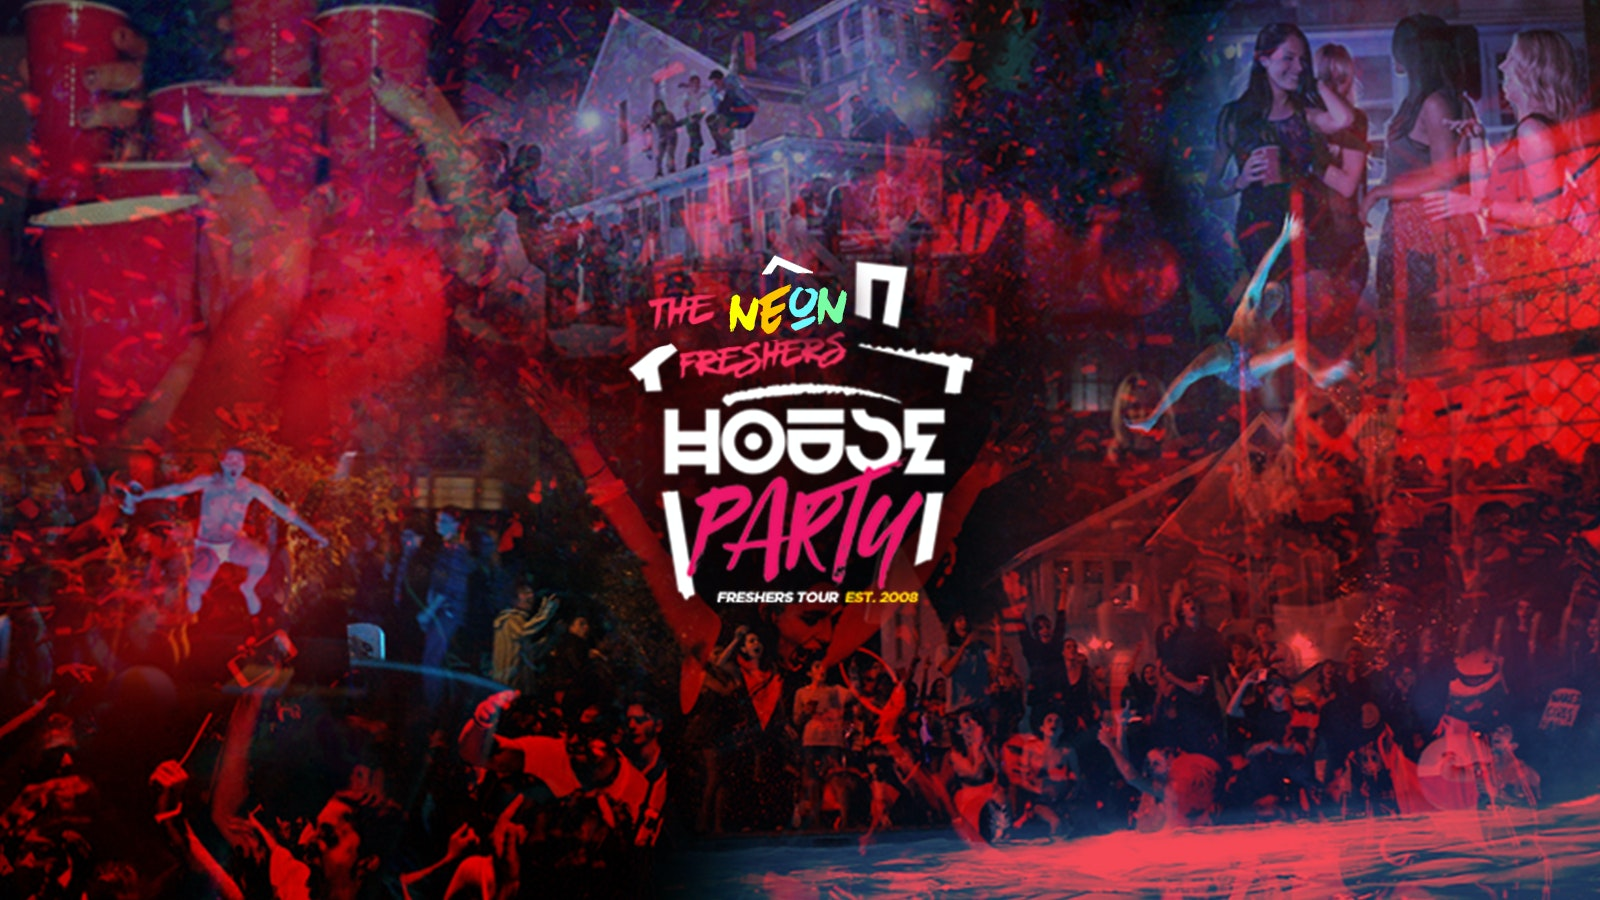 Neon Freshers House Party // Gloucester